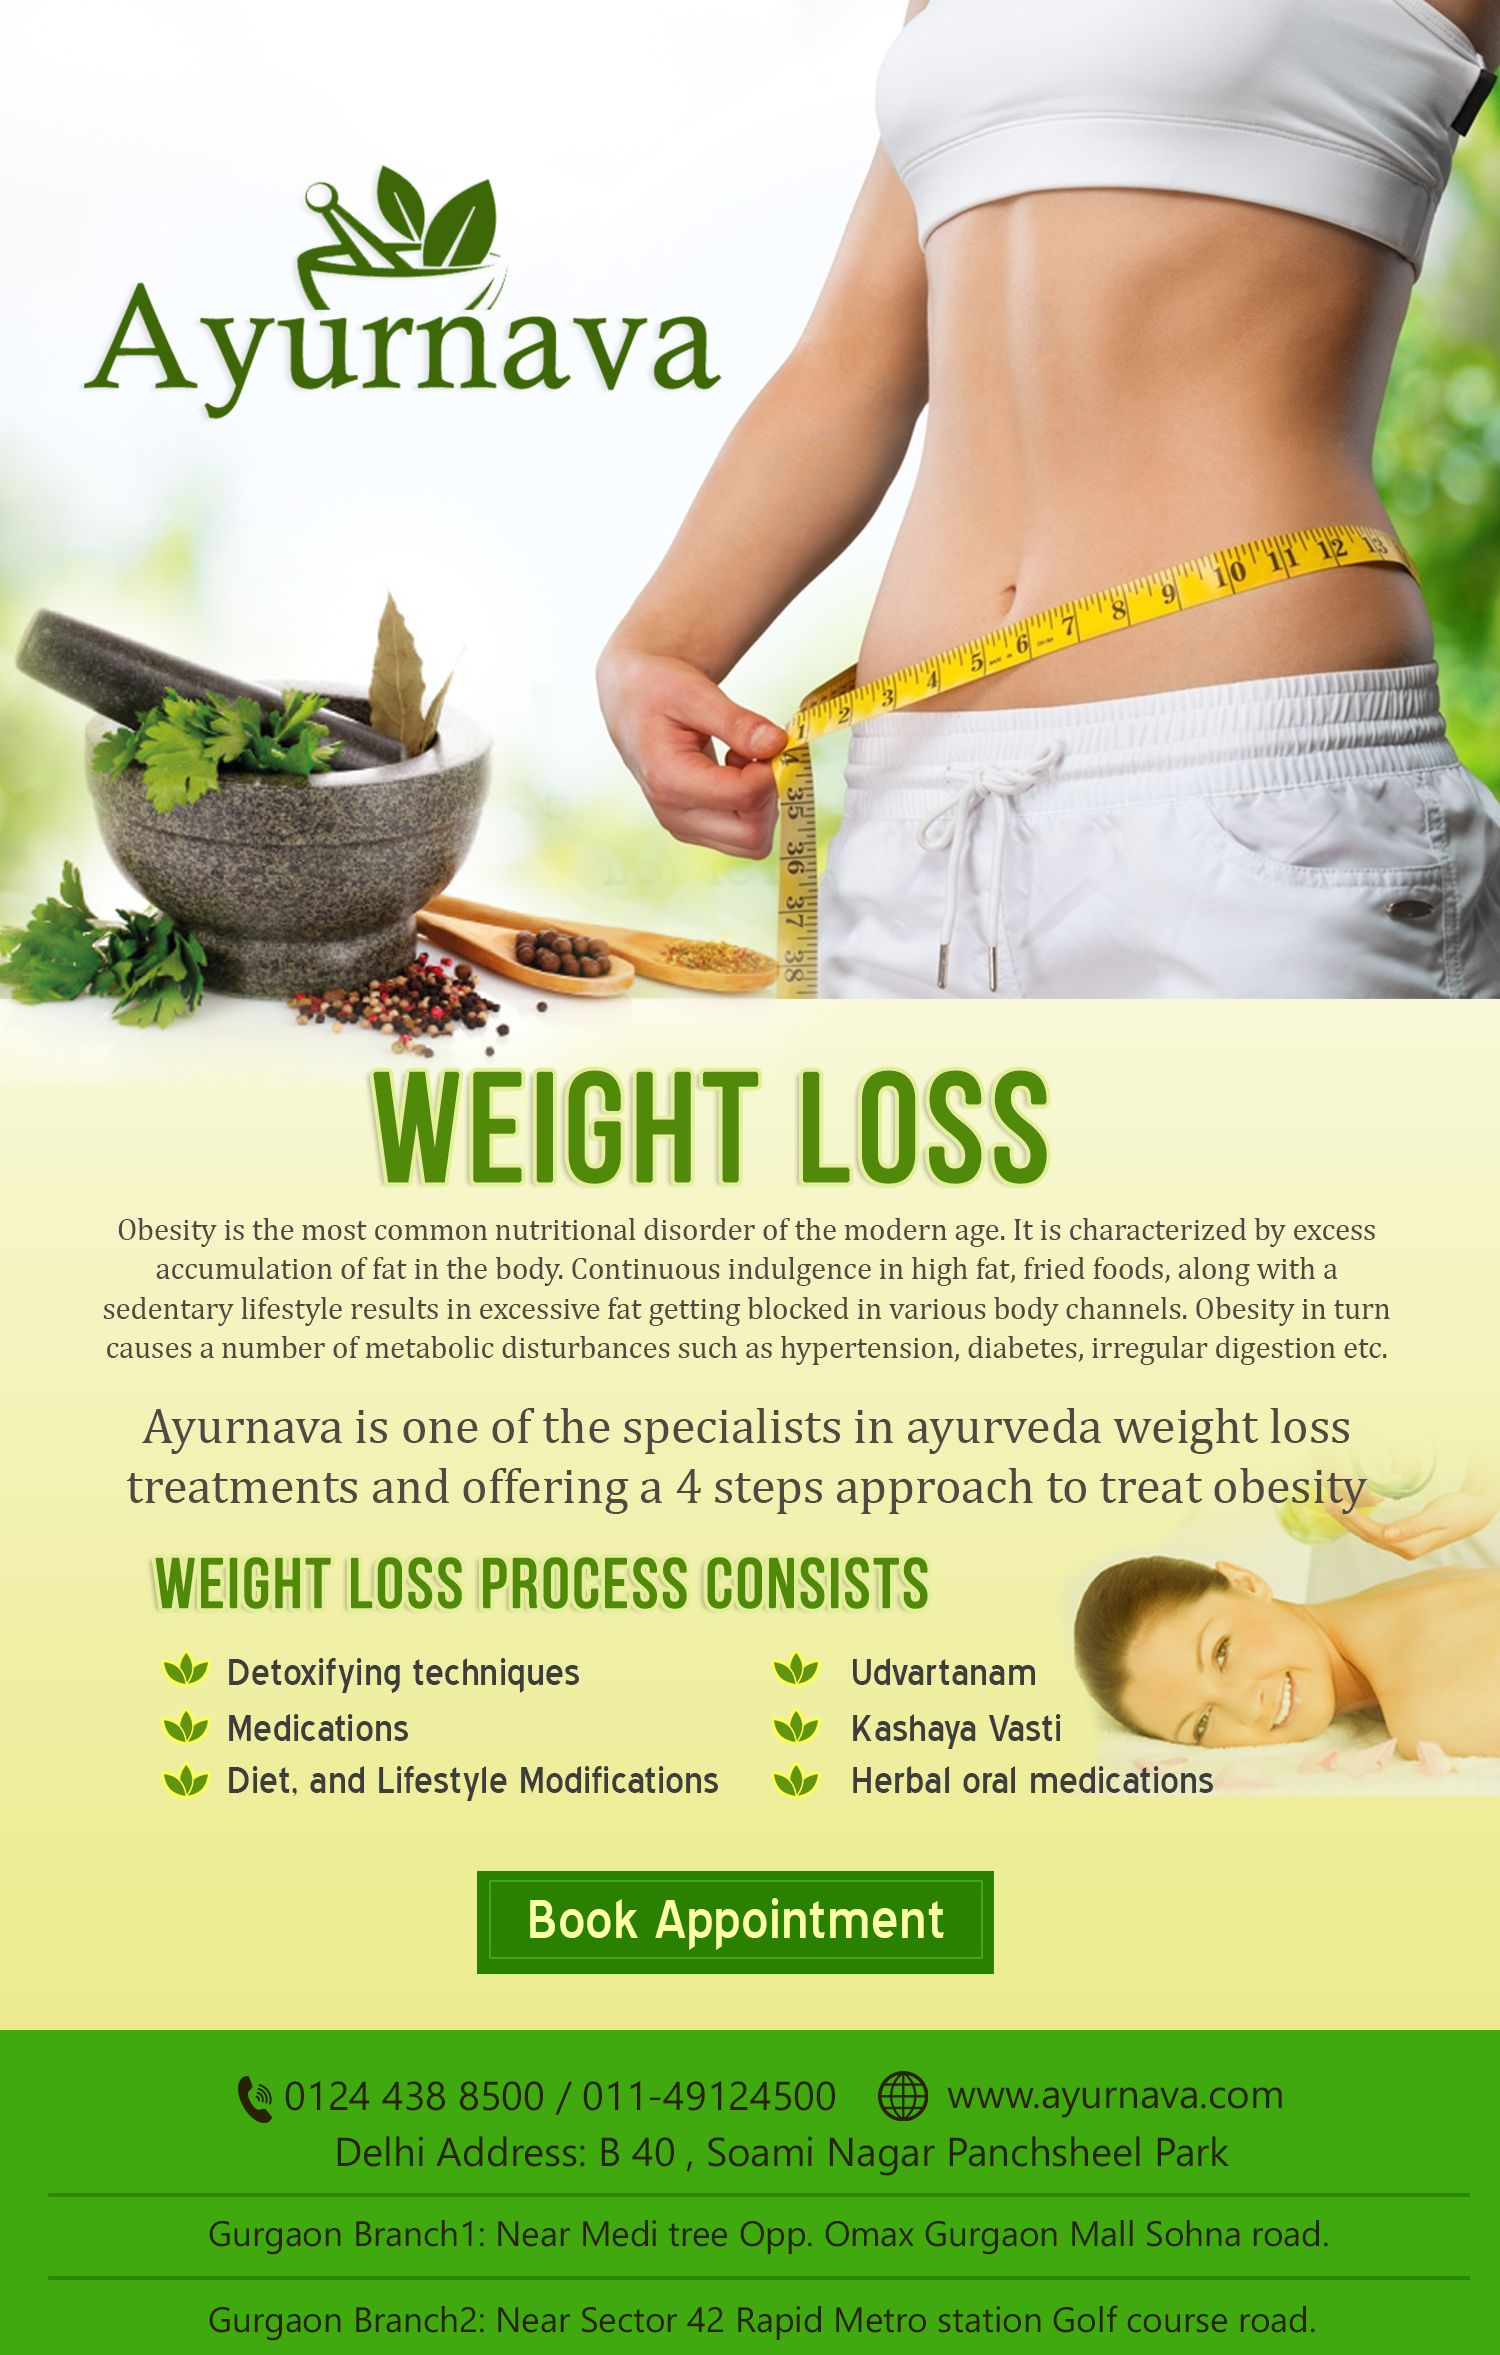 Ayurnnava is one of the Specialists in Ayurveda Weight loss